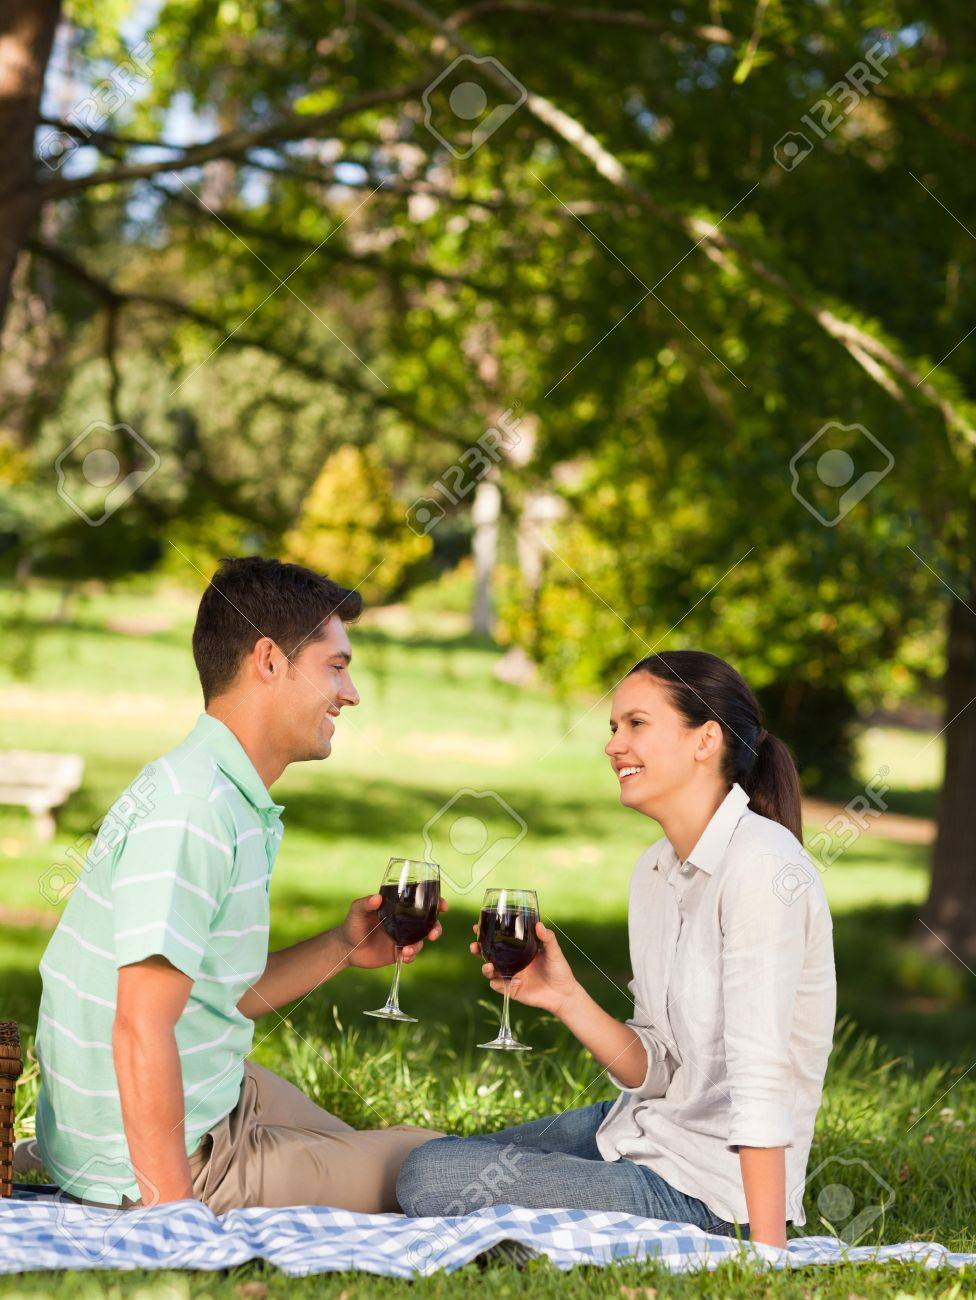 Young couple  picnicking in the park Stock Photo - 10217196